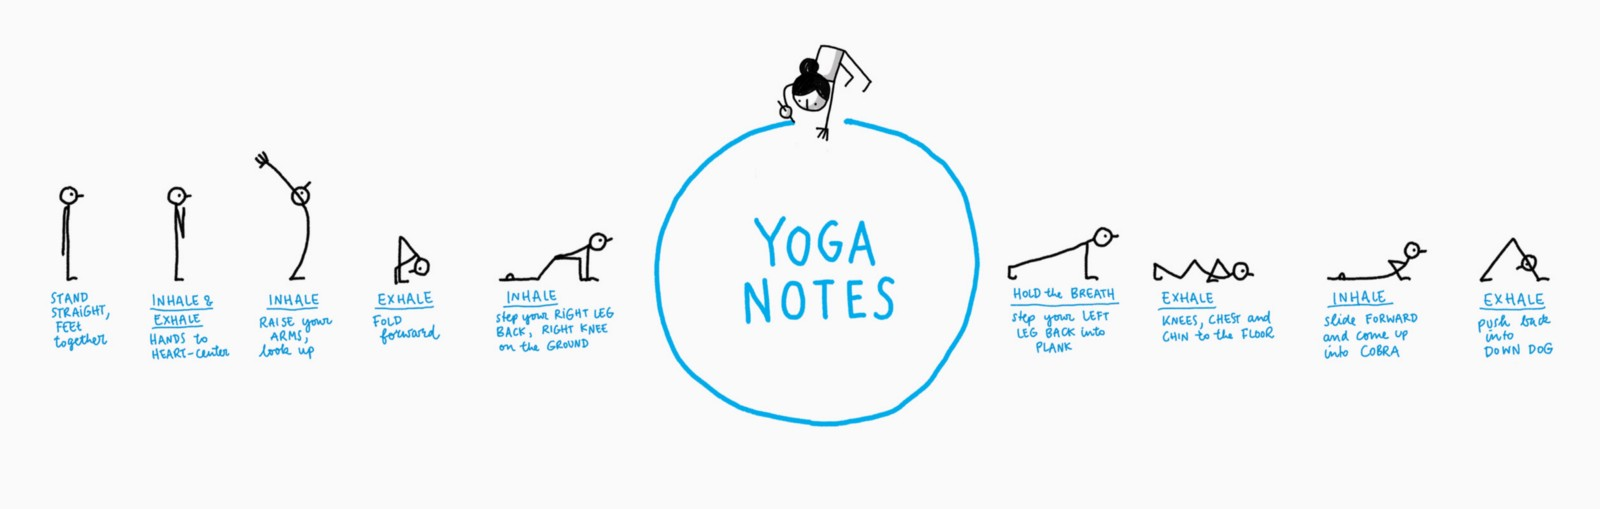 The Making Of Yoganotes Eva Lotta Lamm Medium Below Is A Diagram Inhalation And Exhalation With Anatomical I Wrote Book Called How To Sketch Yoga Postures Sequences This Article Tells Story It Came Into Existence